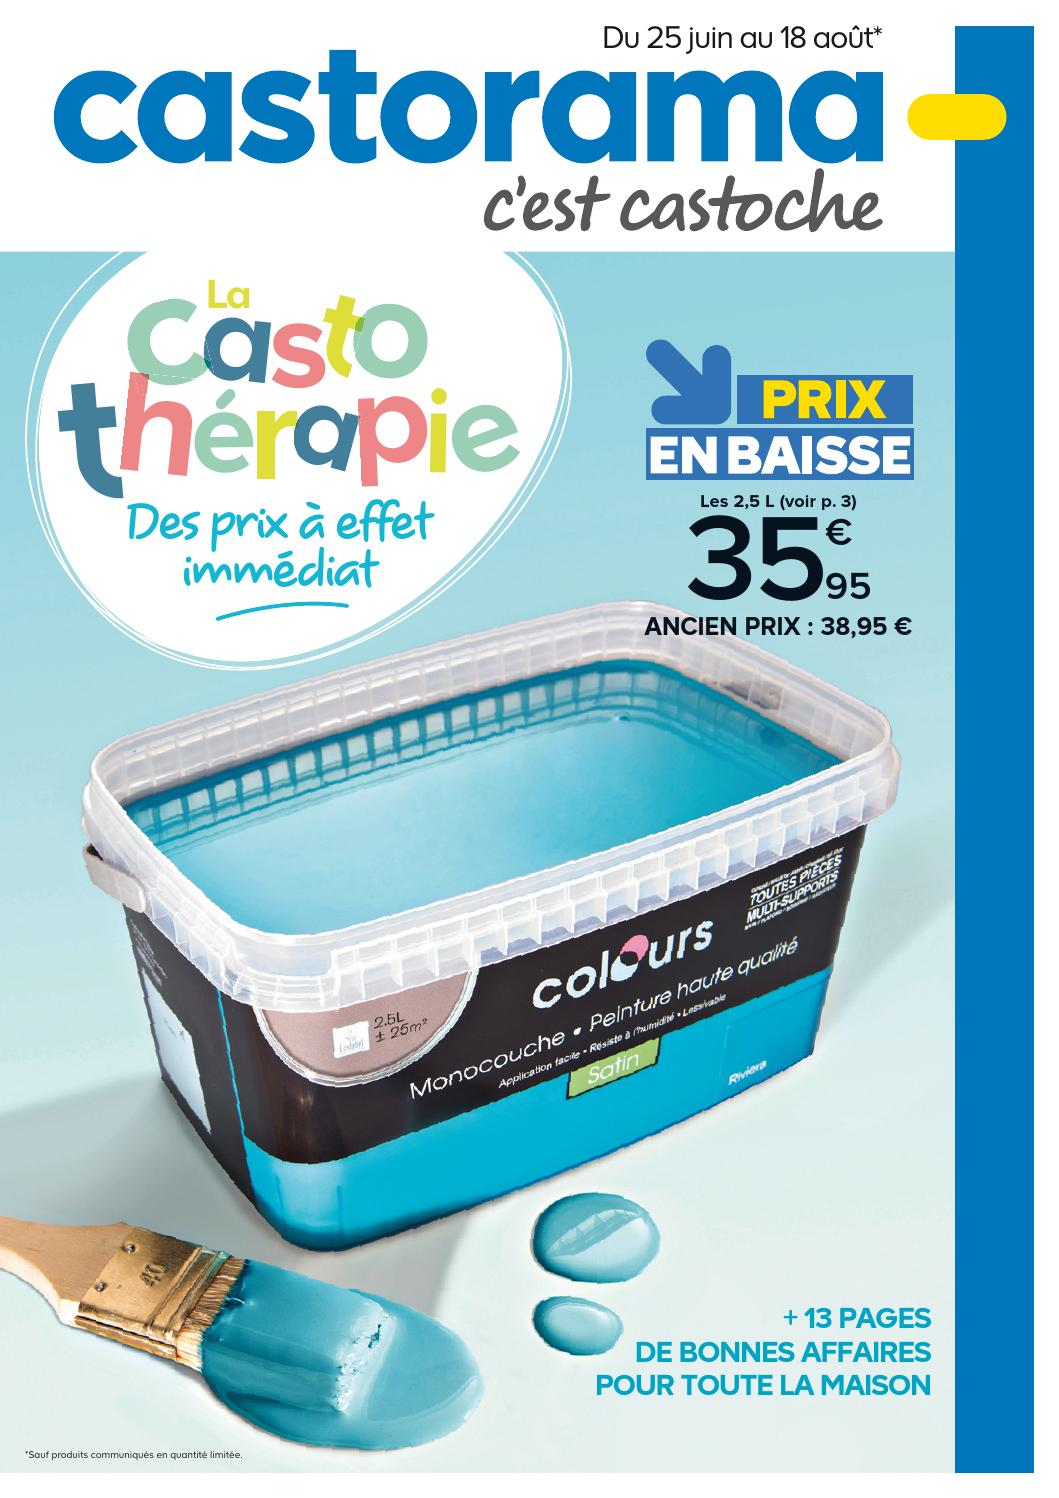 Mousse Emballage Castorama Castorama Catalogue 25juin 18aout2014 By Promocatalogues Issuu